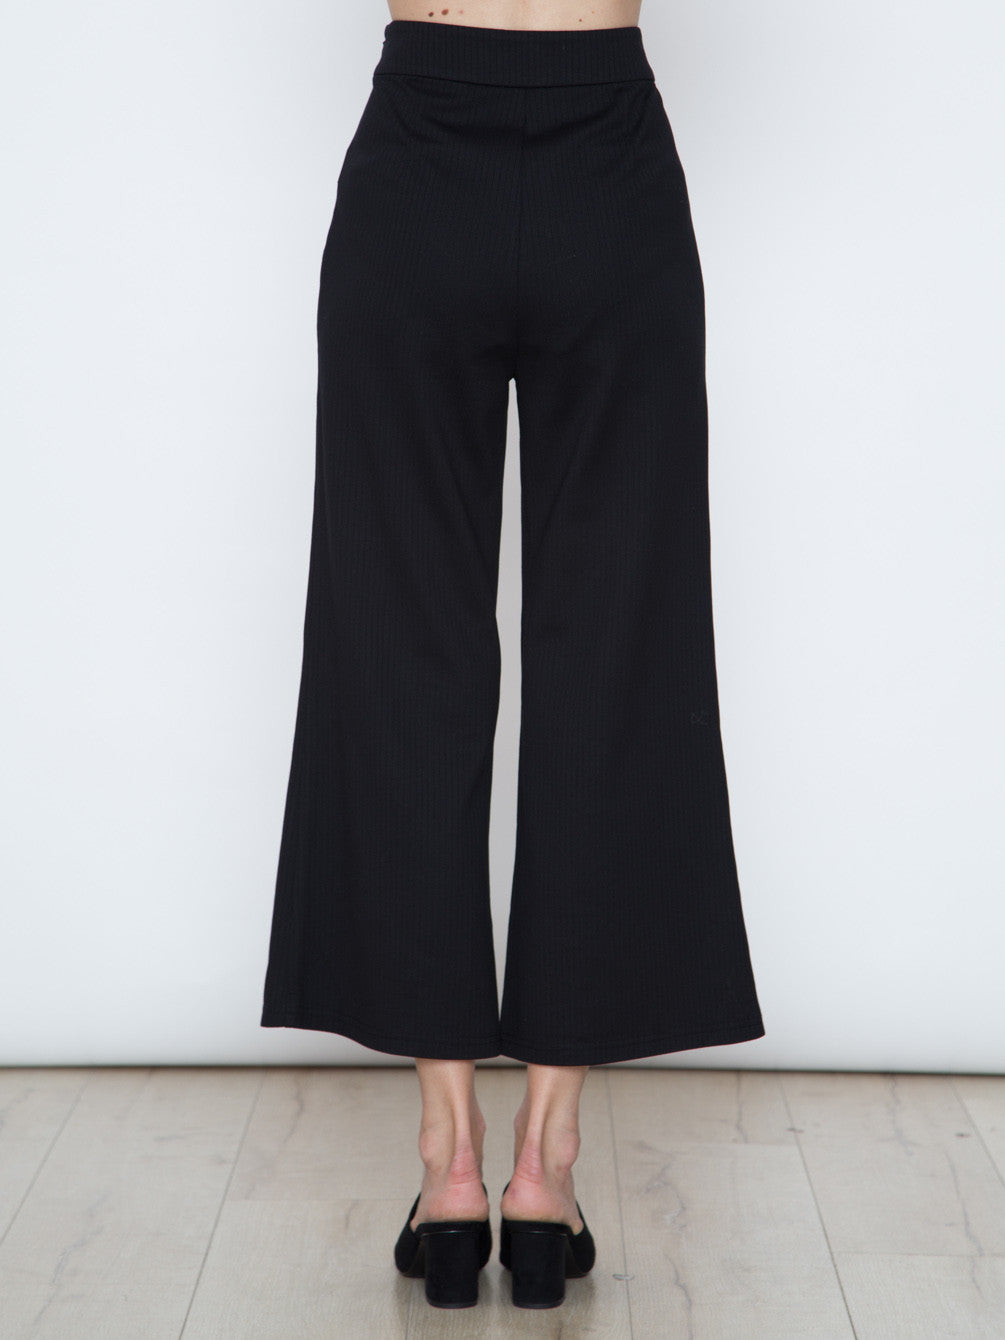 The Everyday Culottes